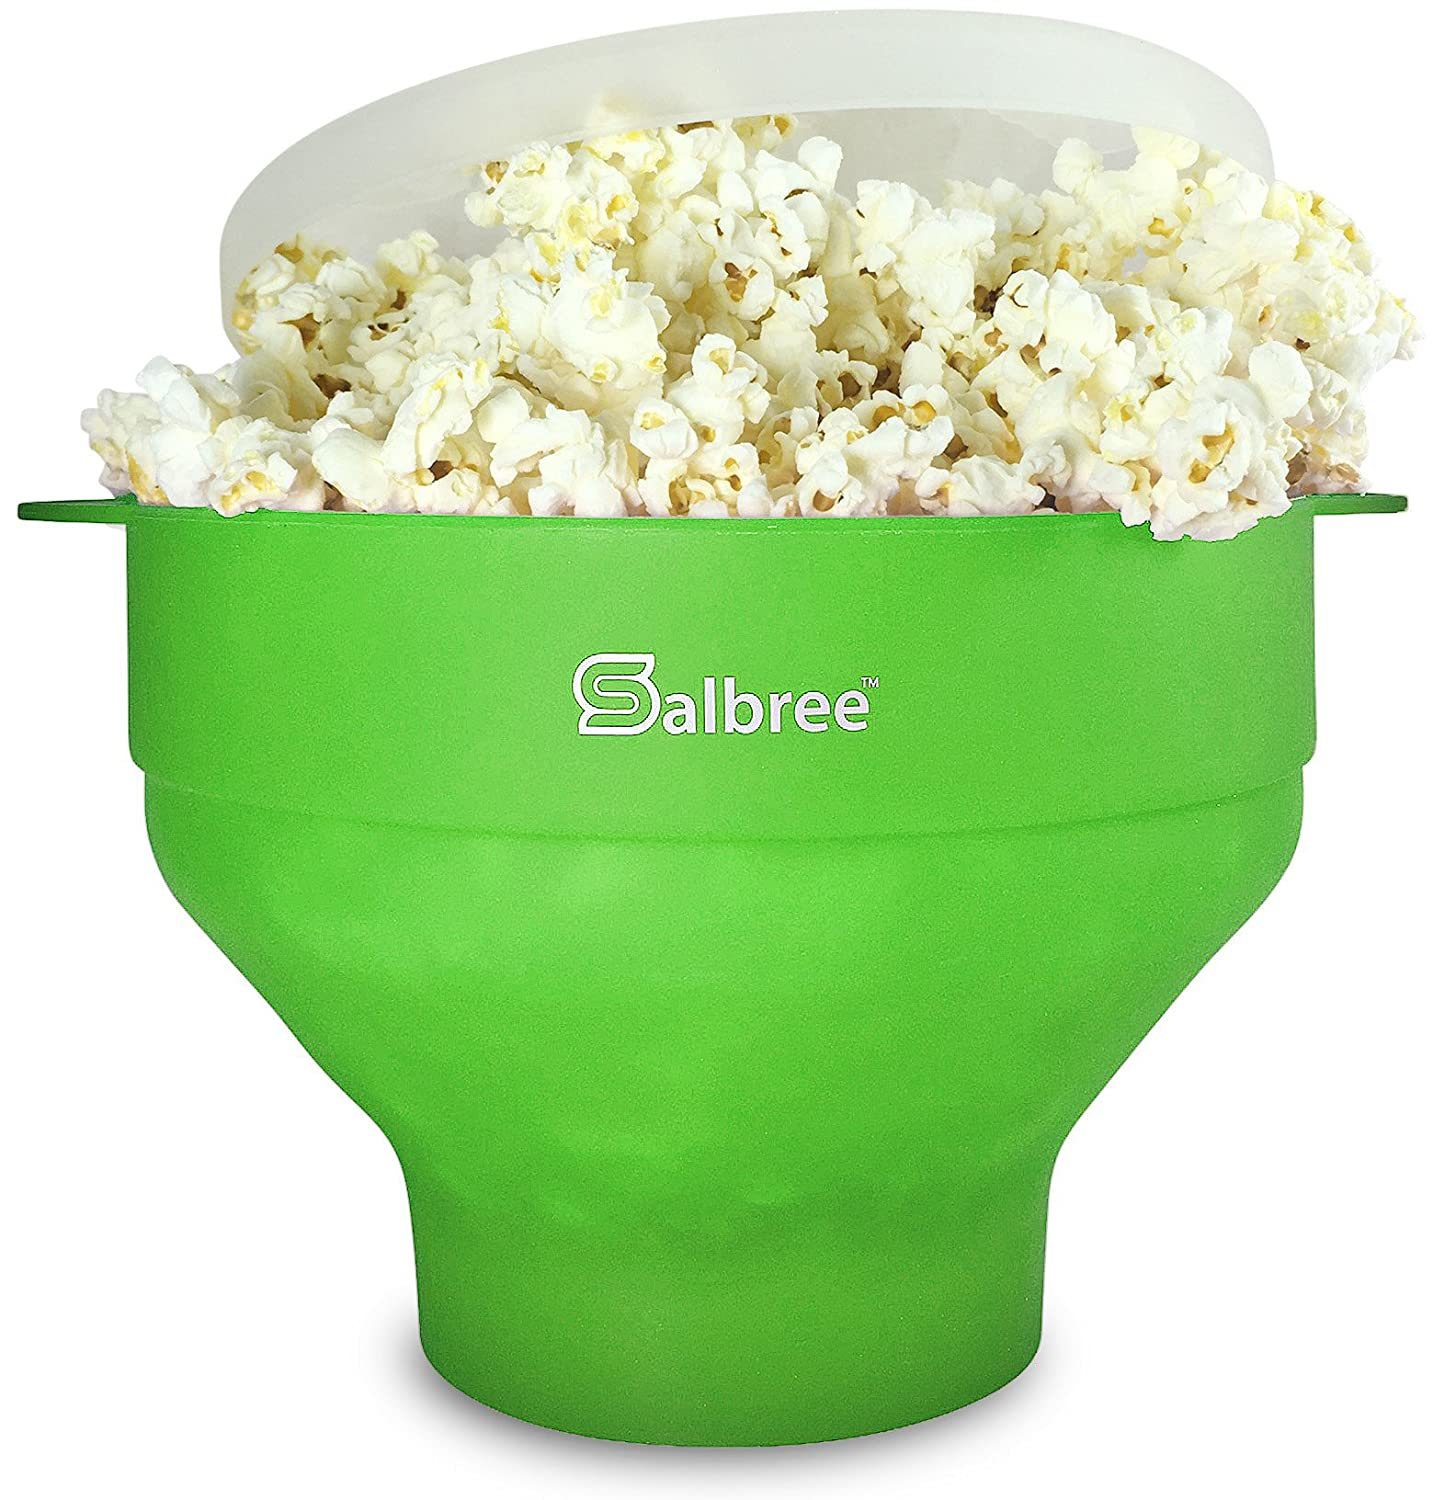 The Original Salbree Microwave Popcorn Popper, Silicone Popcorn Maker, Collapsible Bowl BPA Free - 14 Colors Available (Green)